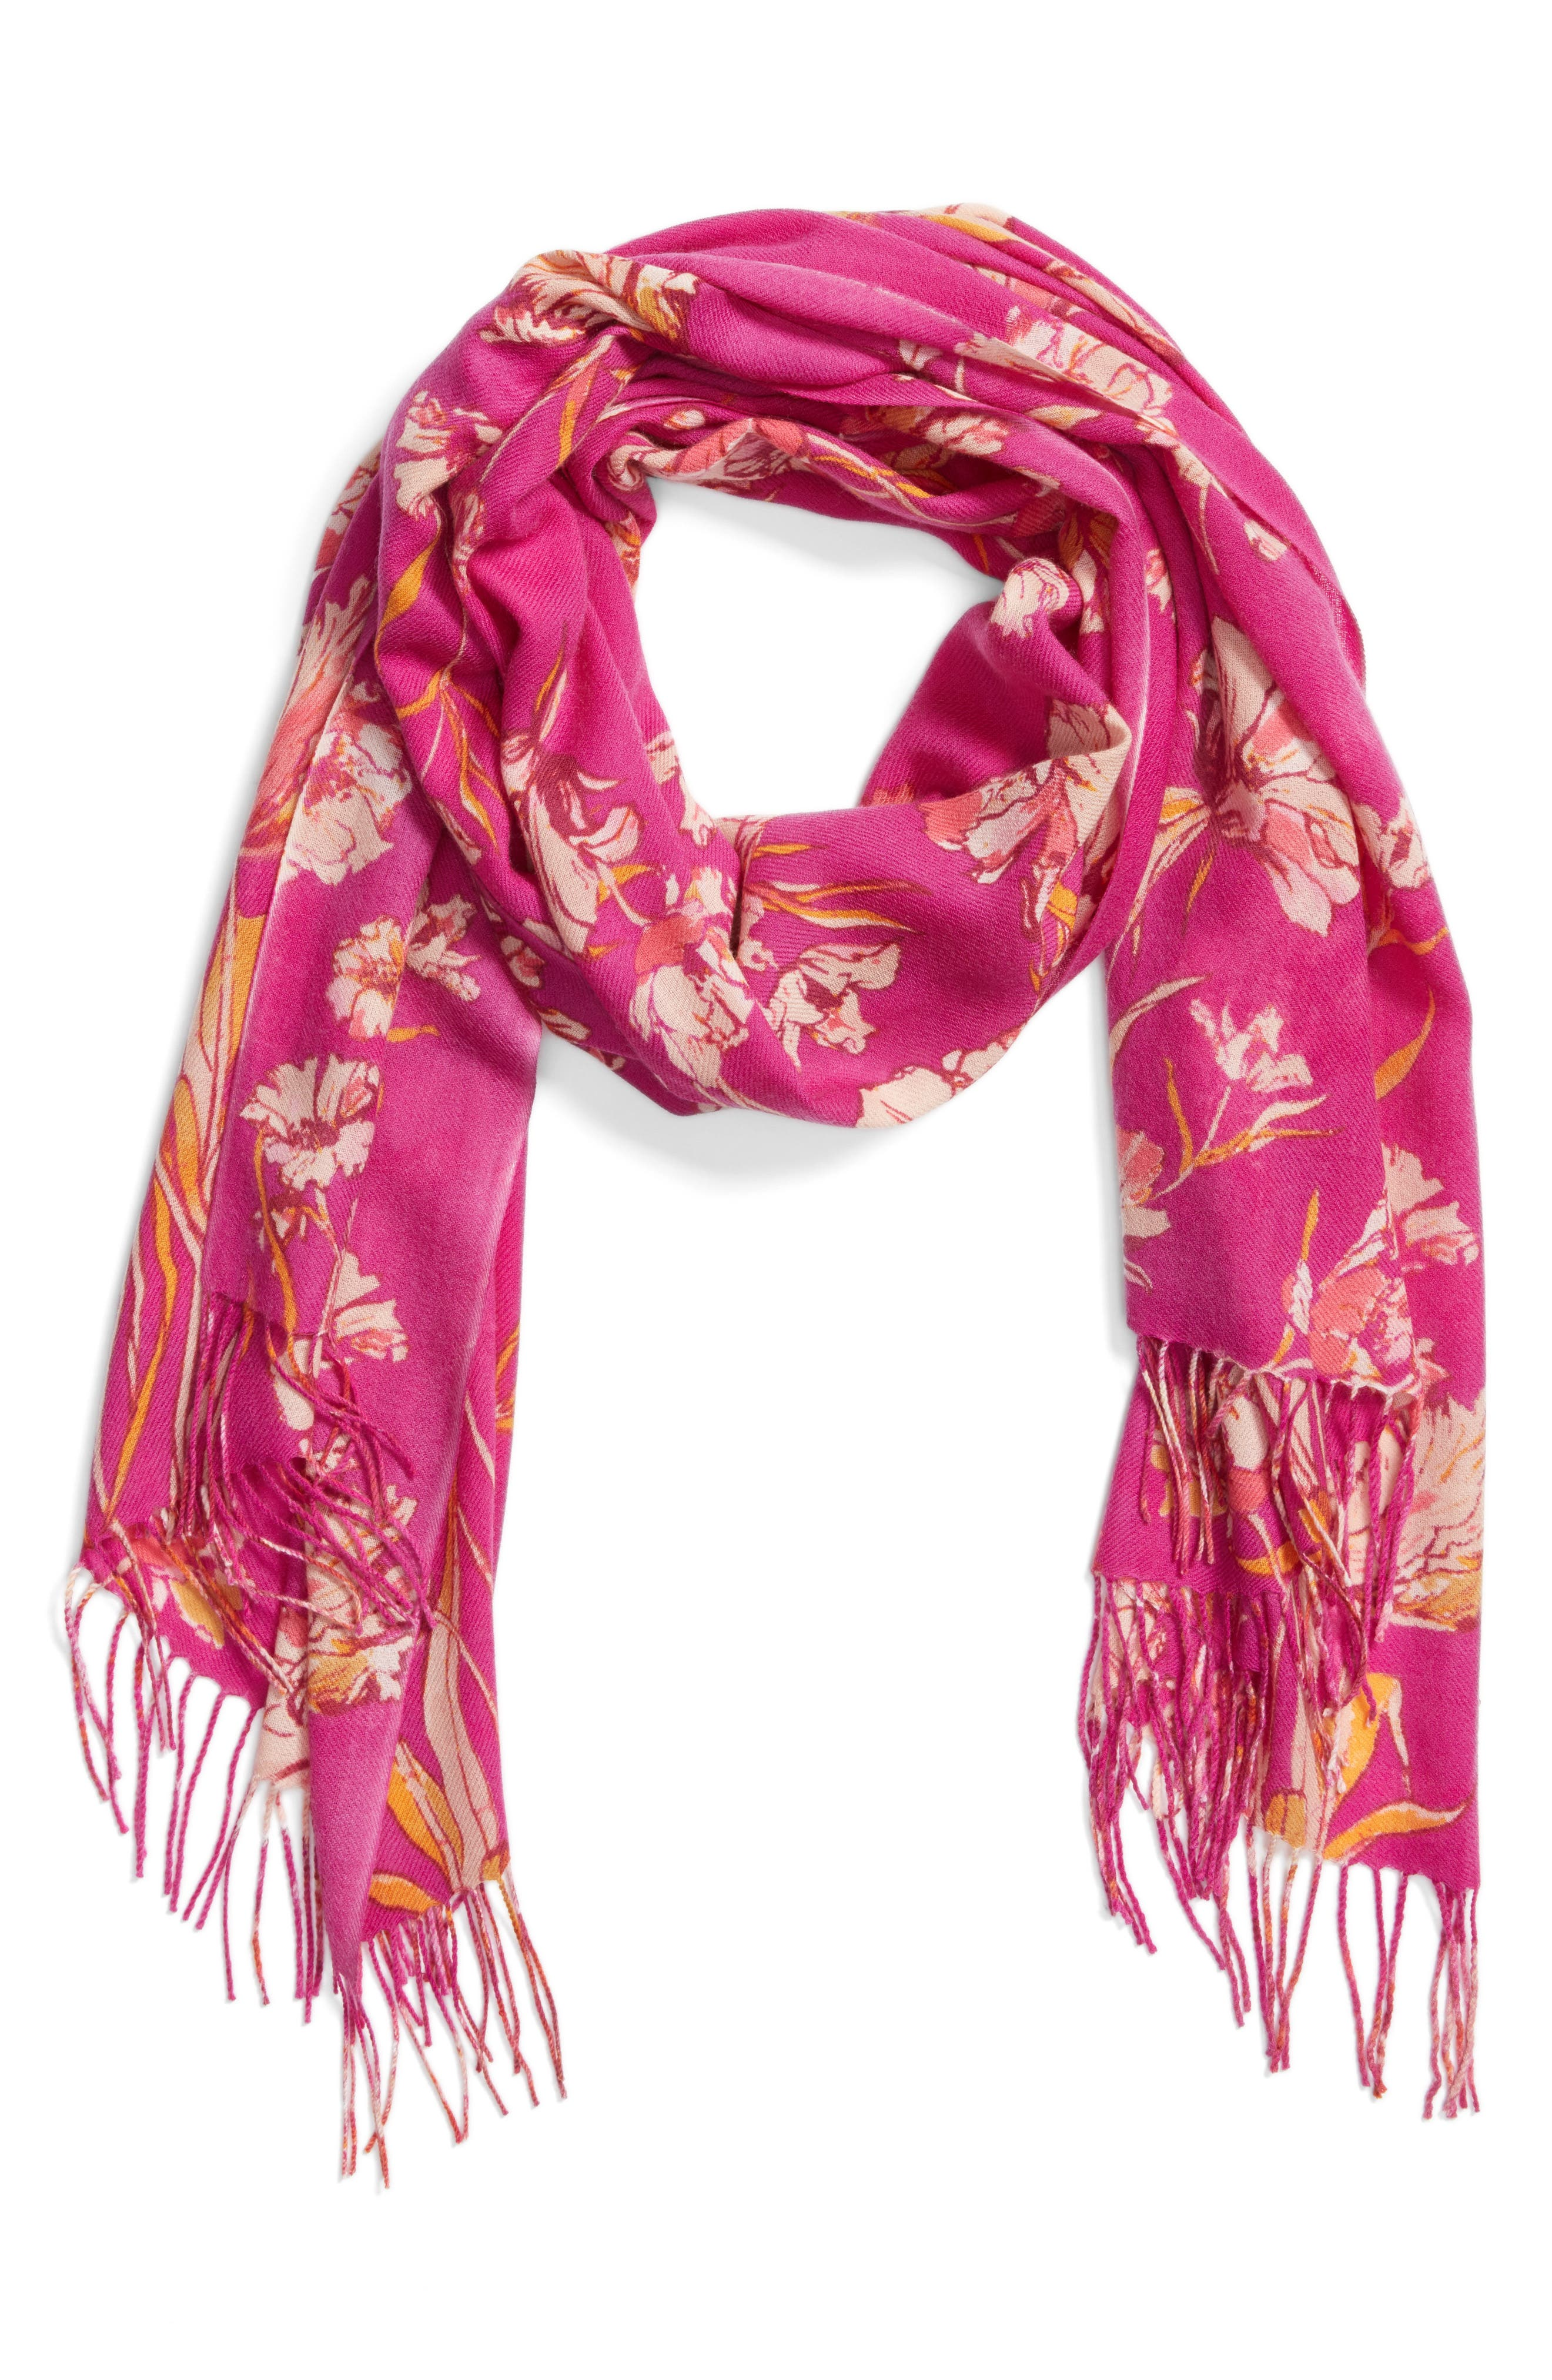 Cambridge Print Wool & Cashmere Scarf,                             Alternate thumbnail 6, color,